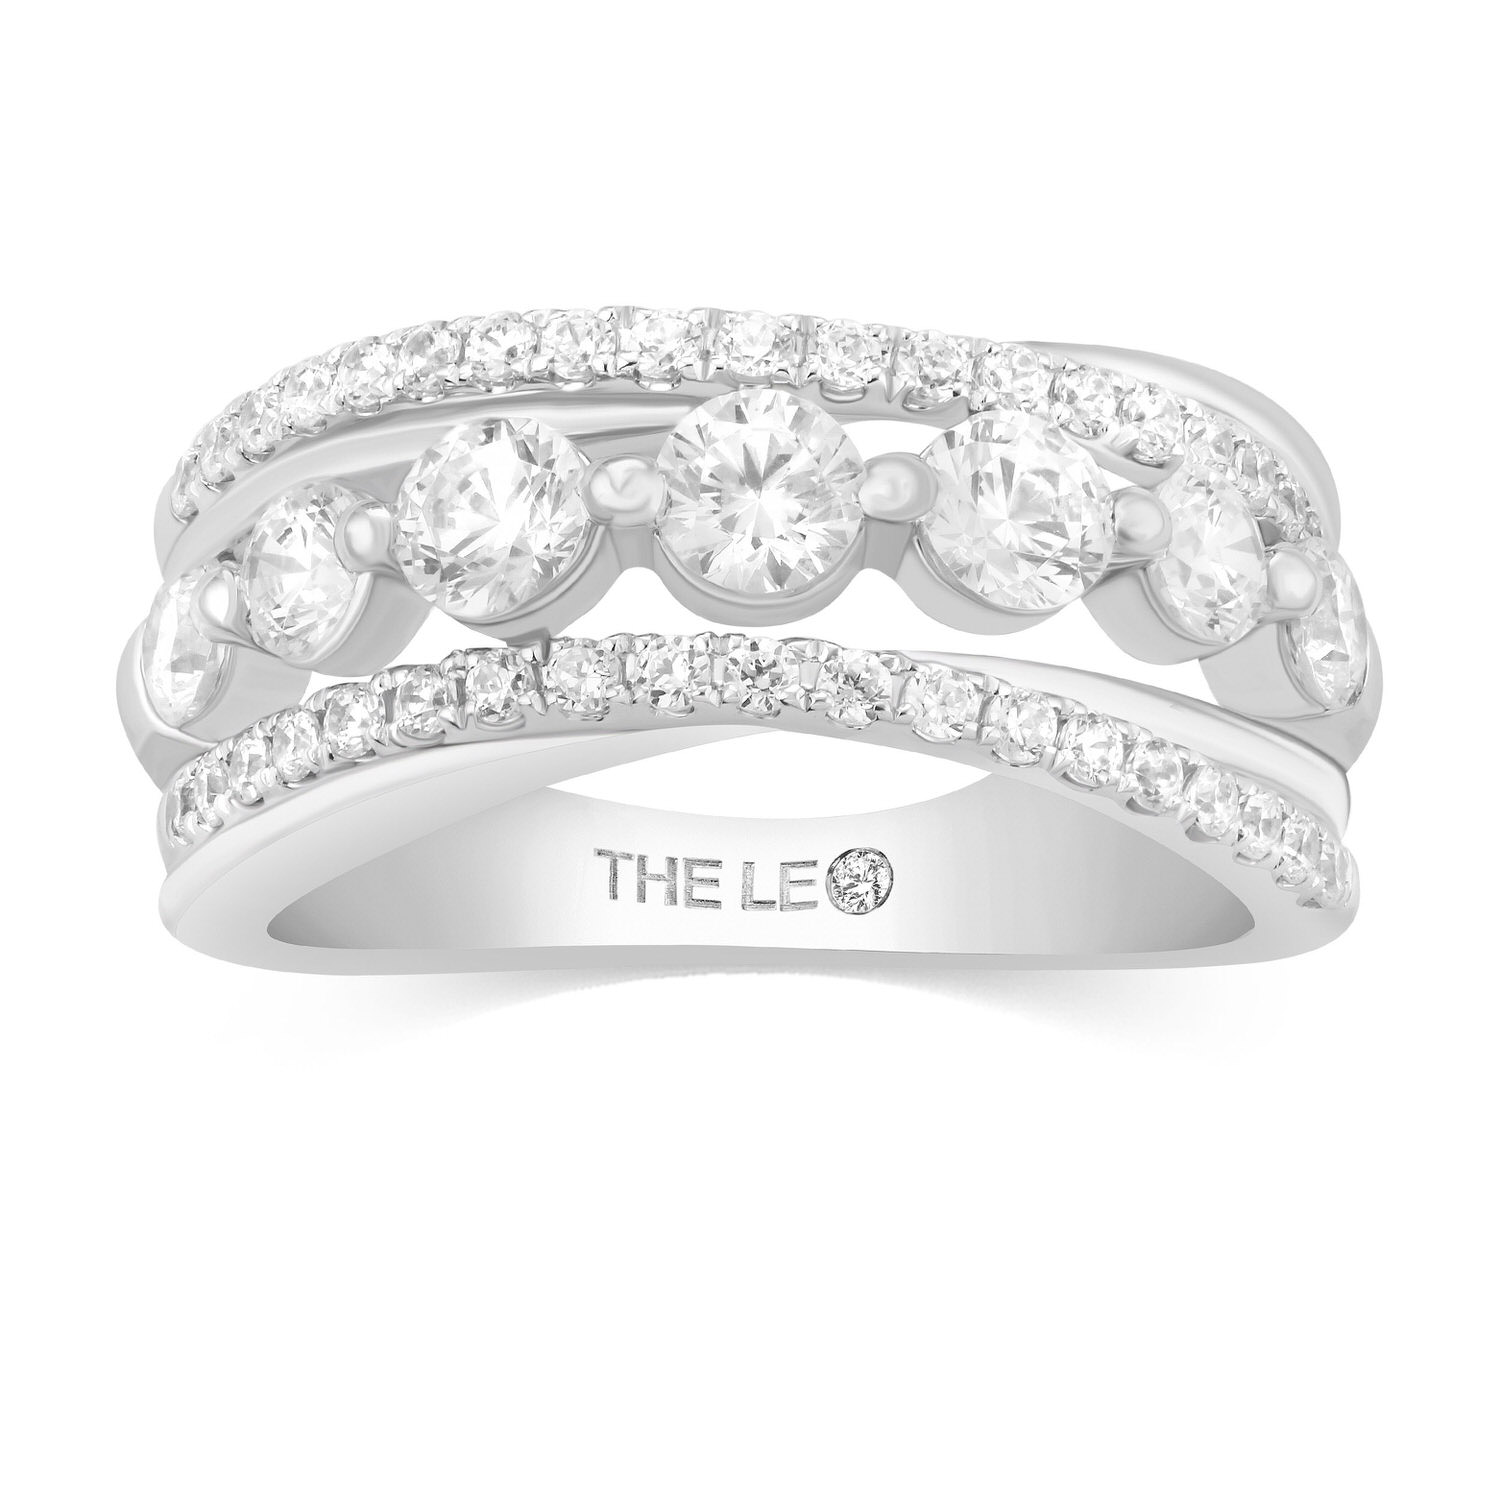 Leo Diamond Ring 1-1/2 ct tw 14K White Gold